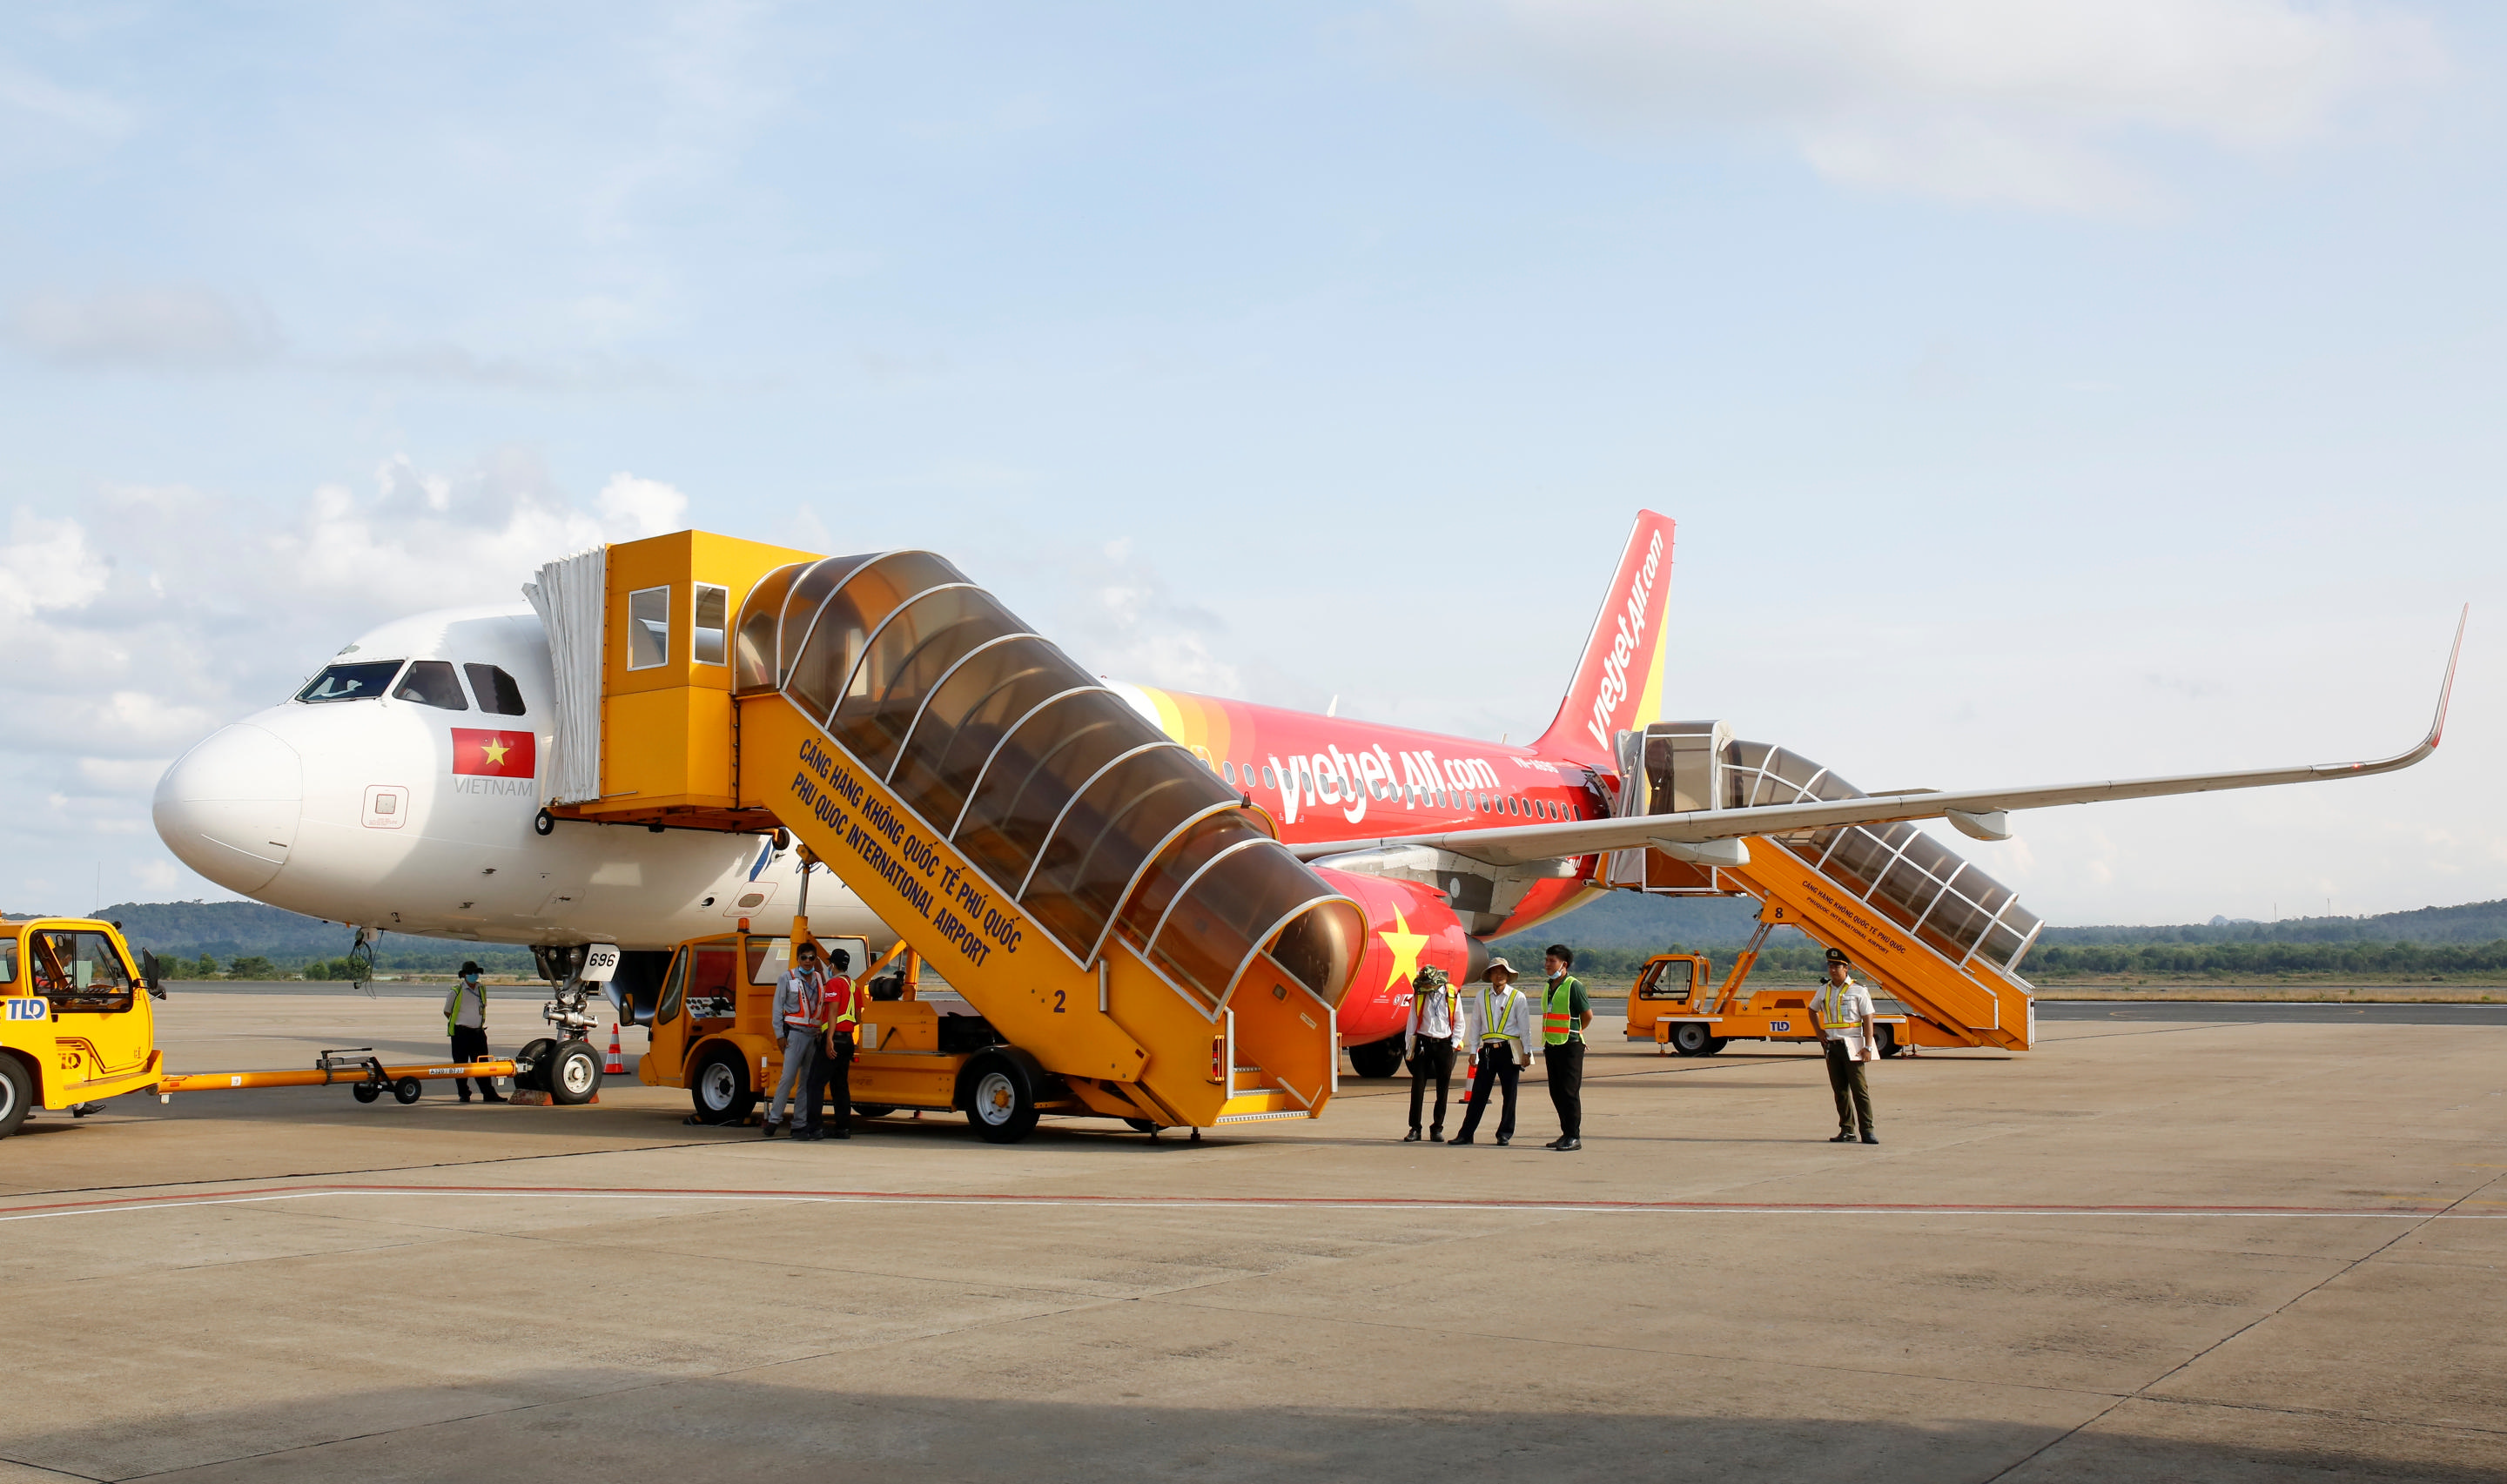 Vietjet launches routes from Hai Phong to Phu Quoc, Da Lat, Buon Ma Thuot to celebrate new terminal